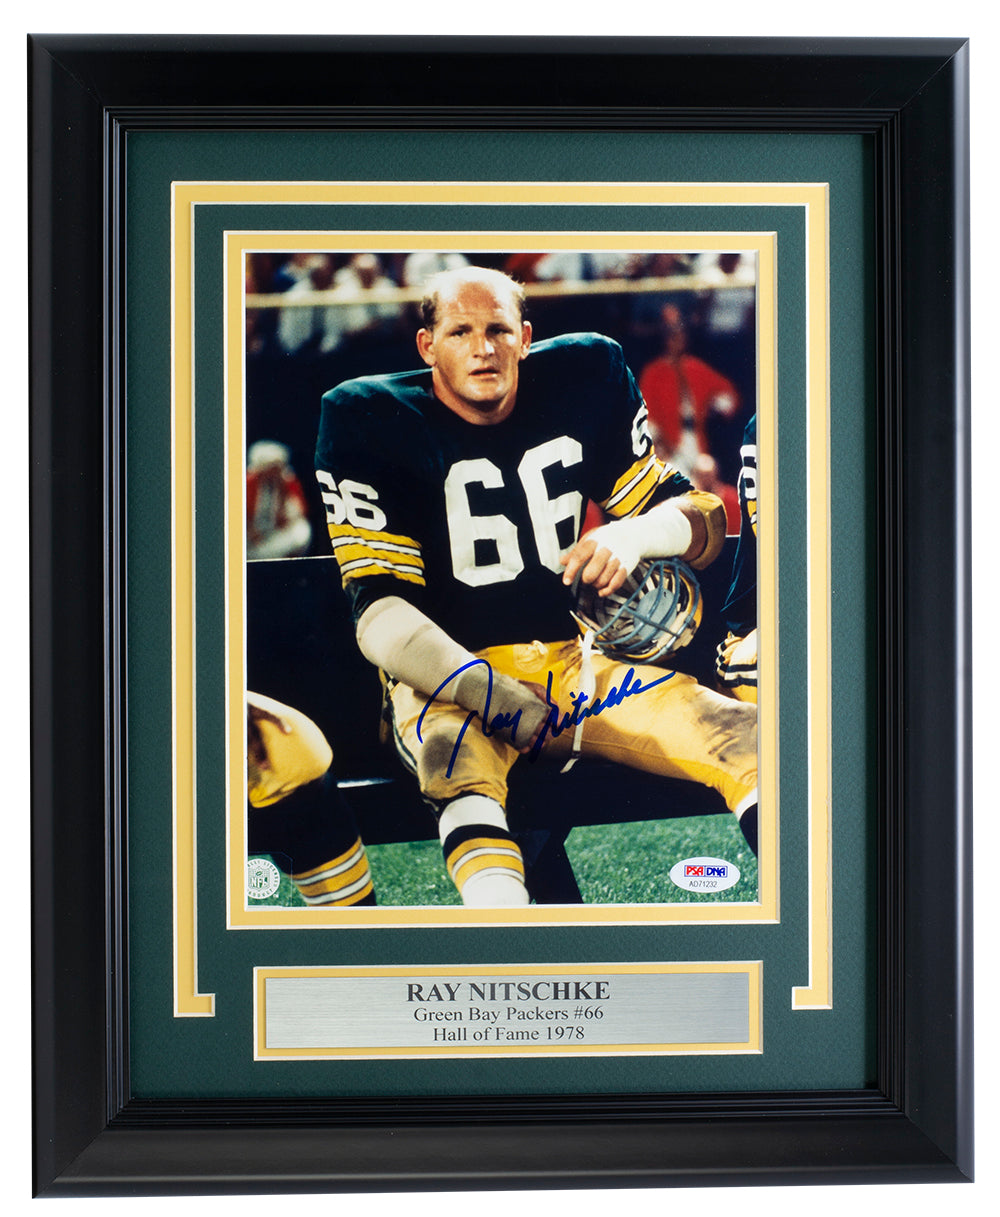 Ray Nitschke Green Bay Packers Signed Framed 8x10 Photo PSA/DNA AD71232 PSM-Powers Sports Memorabilia